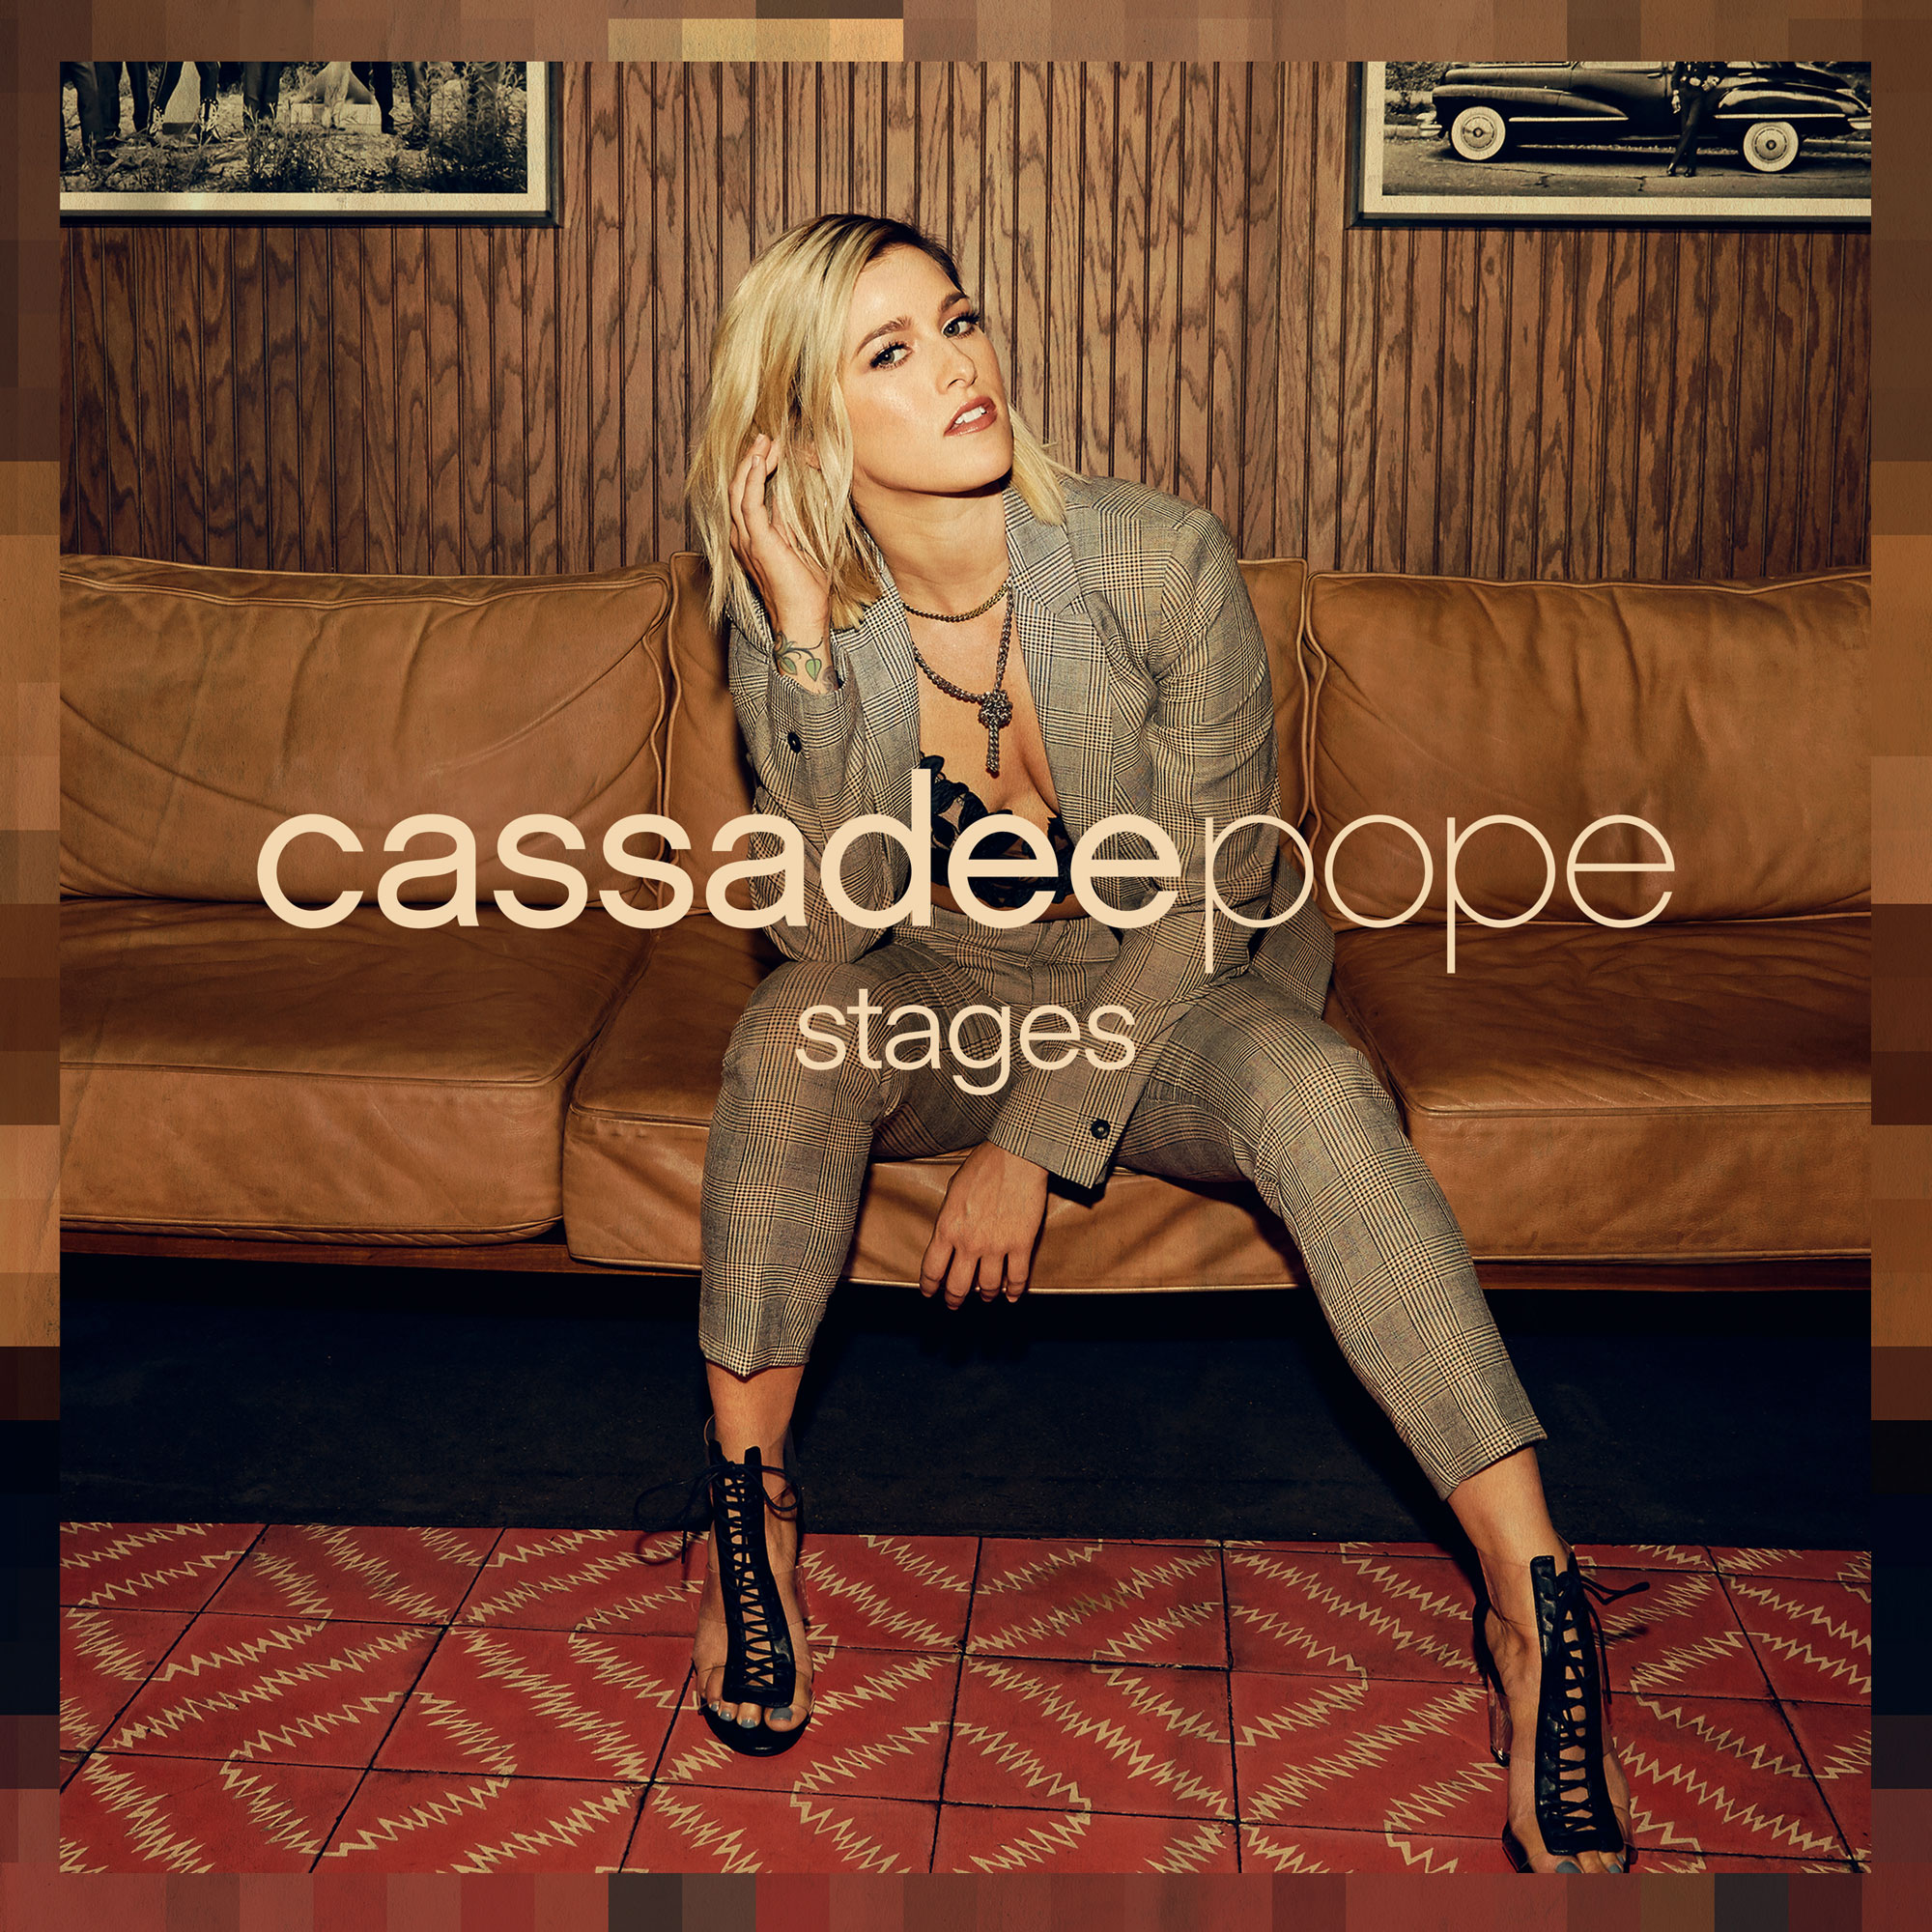 Cassadee Pope album cover